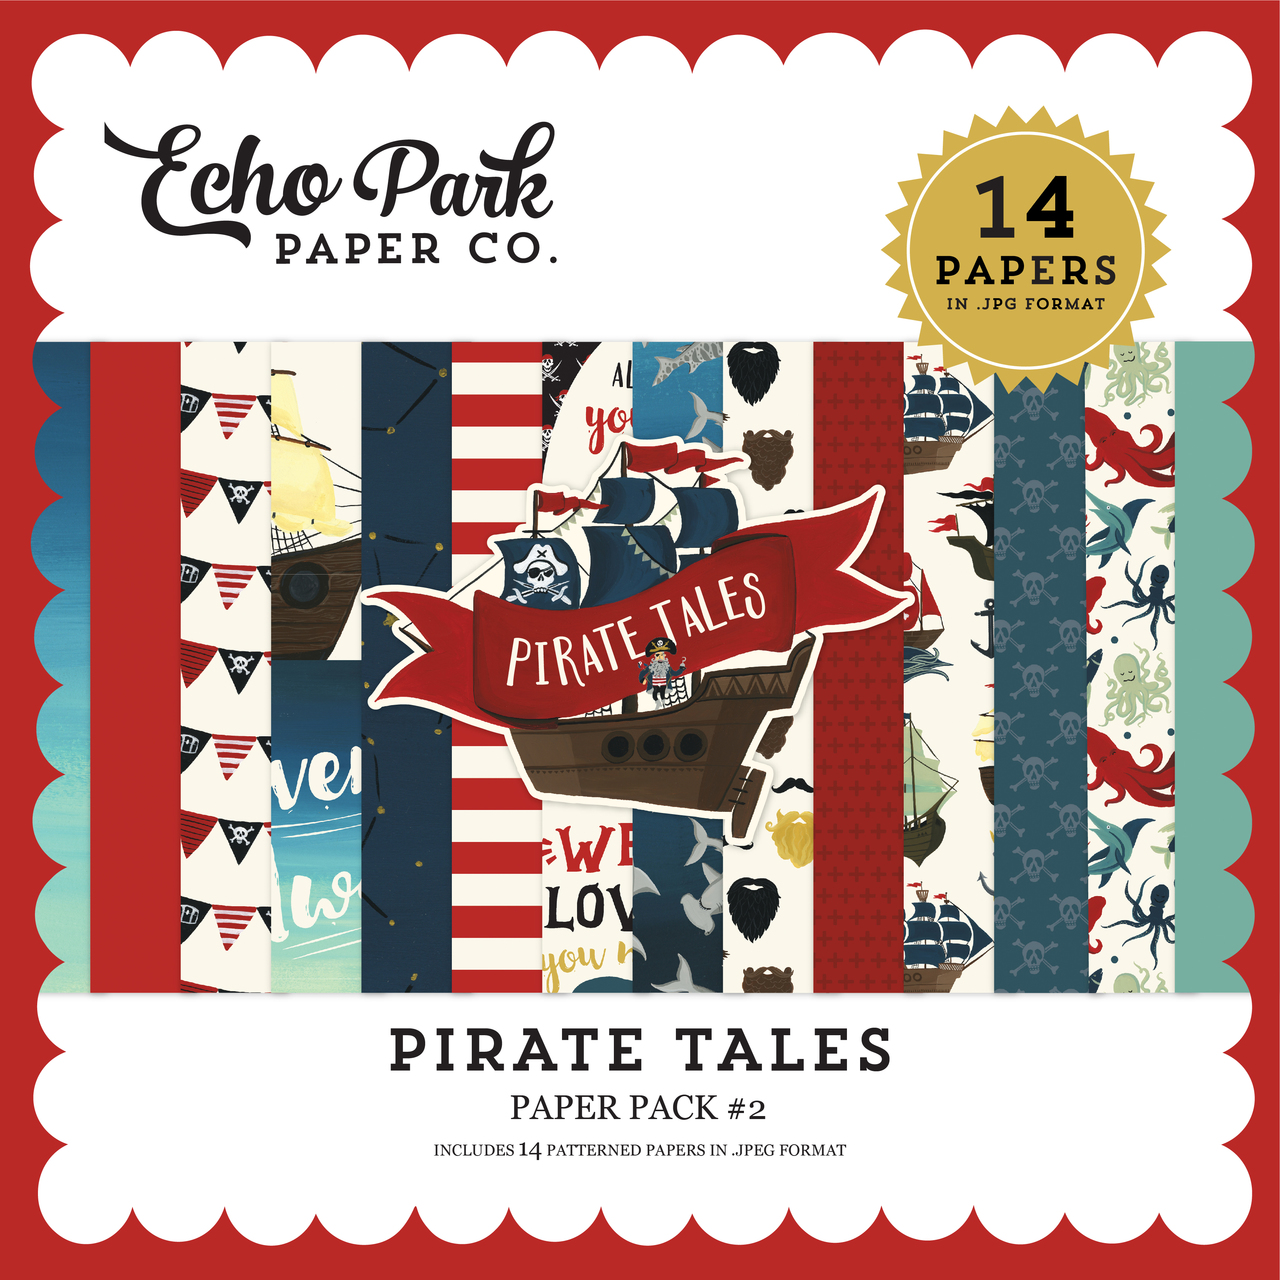 Pirate Tales Paper Pack #2